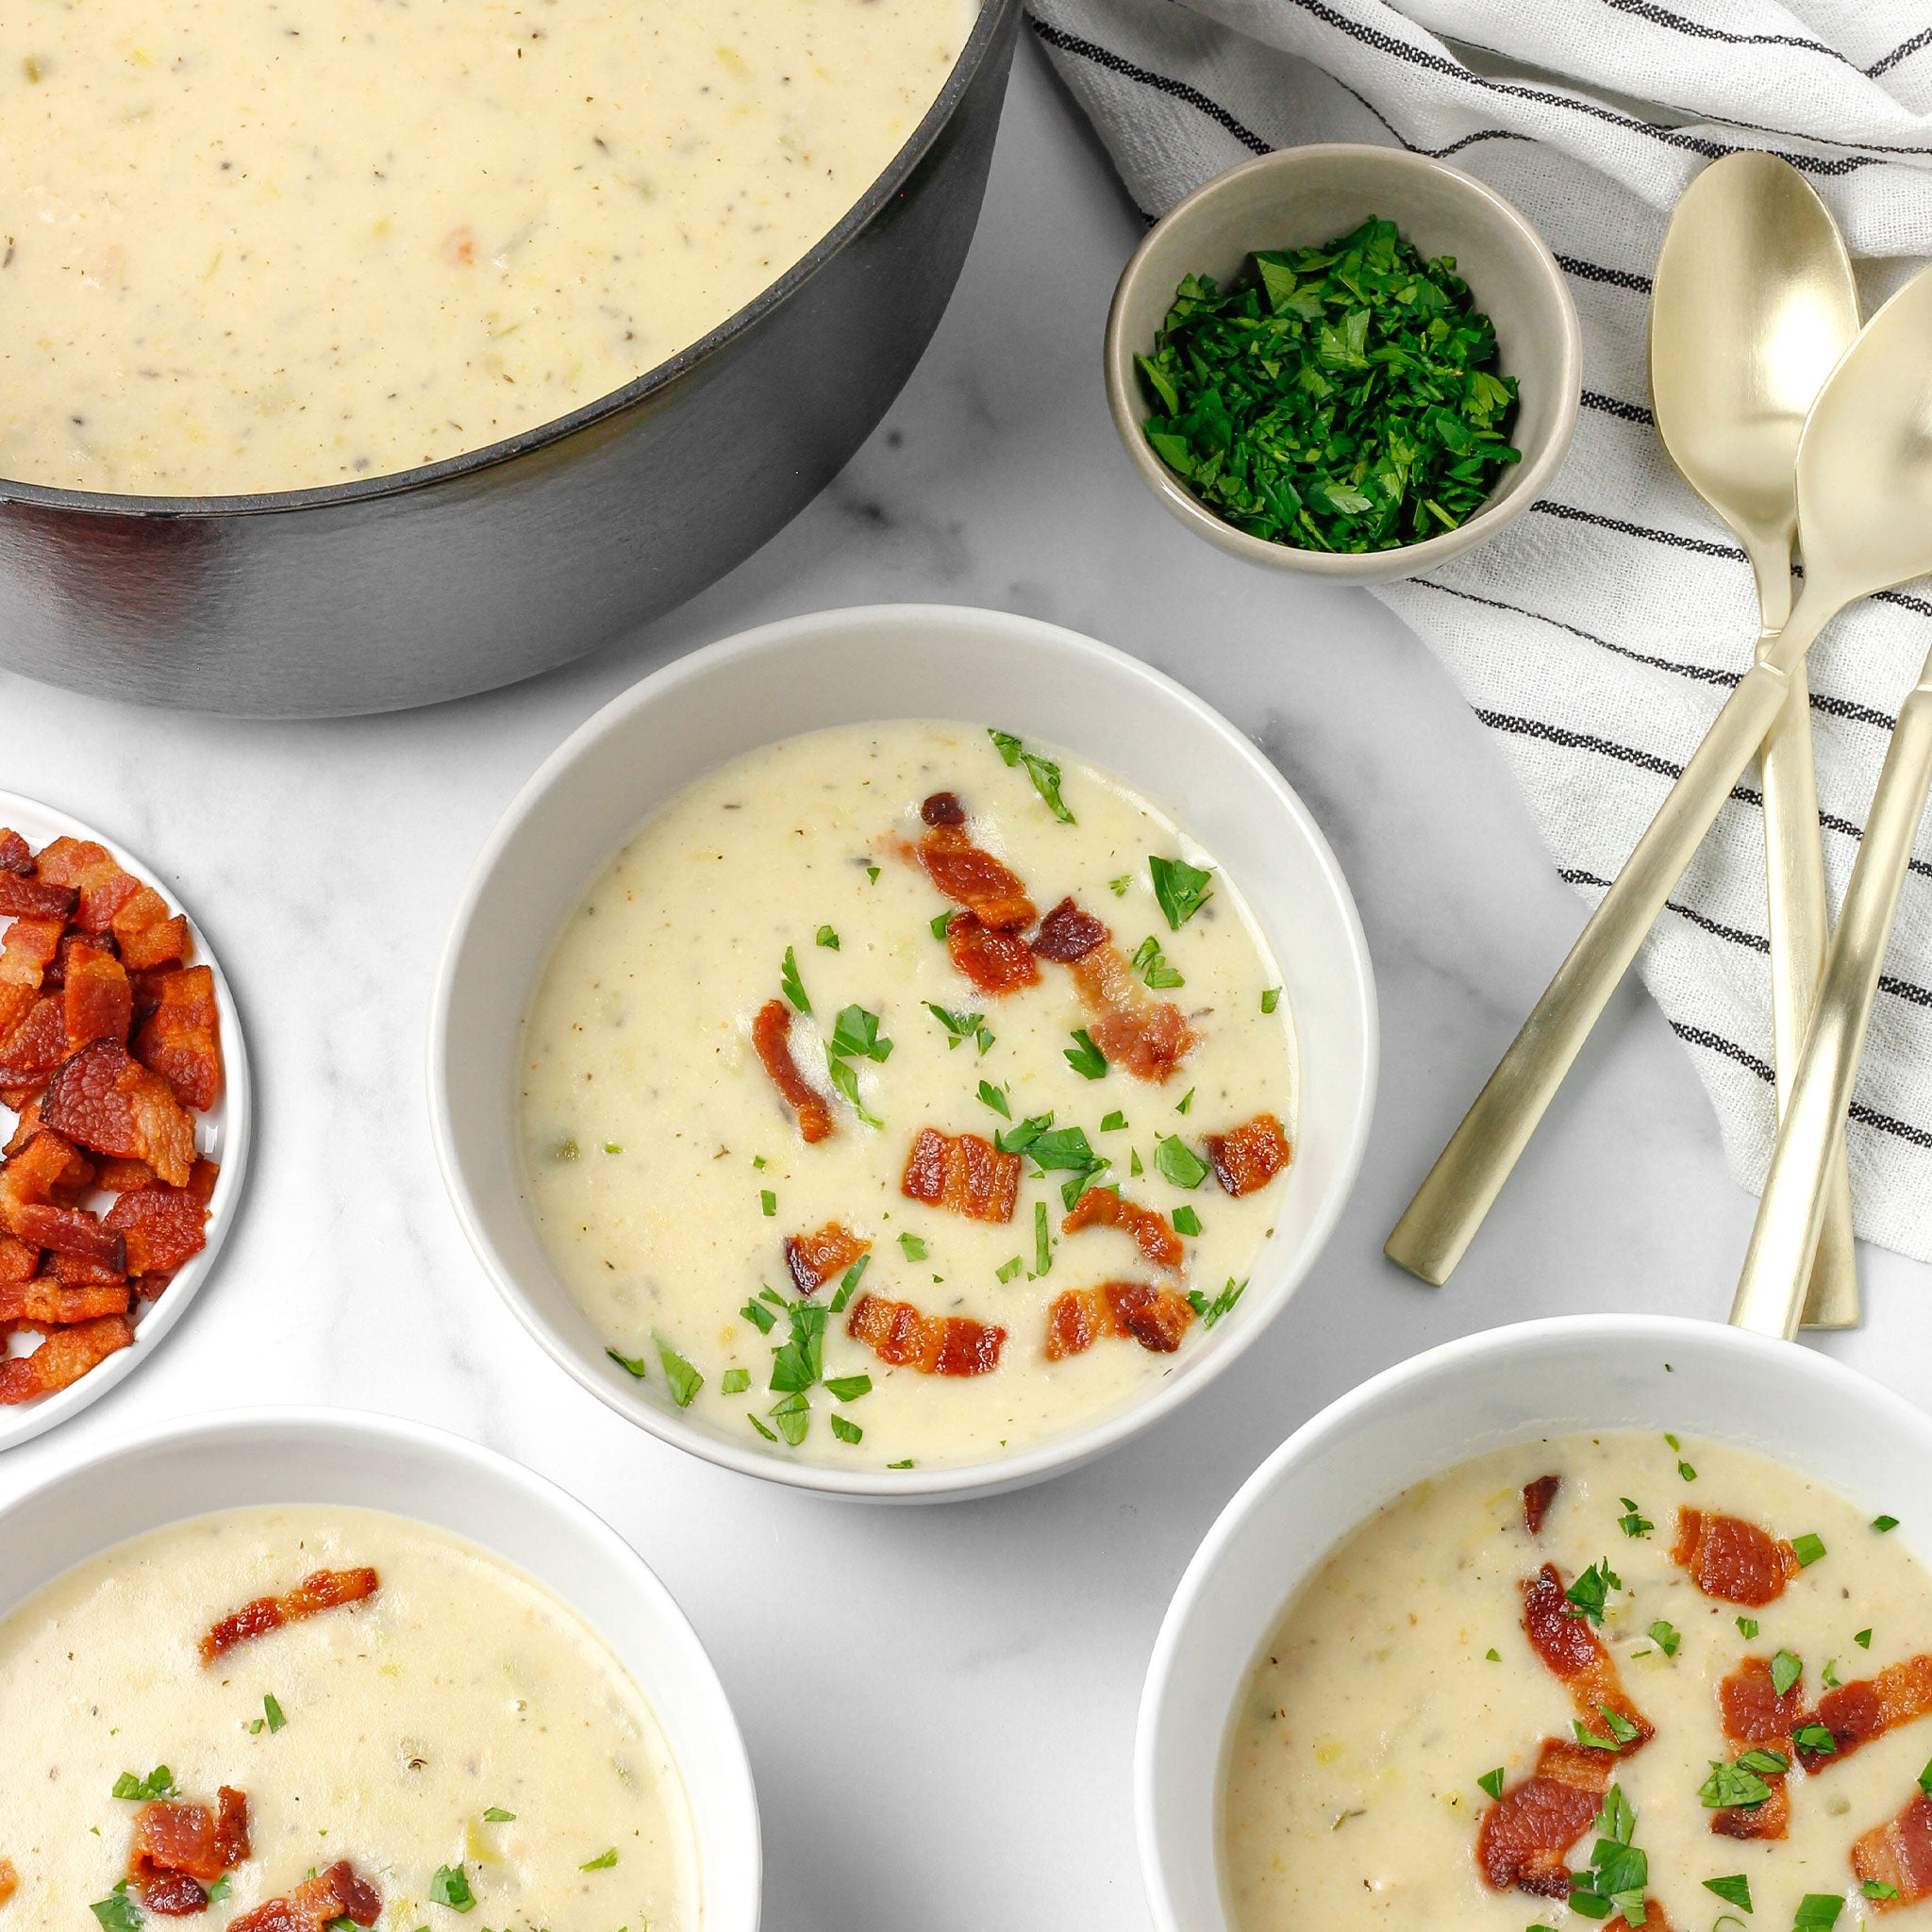 Clam chowder in white bowls